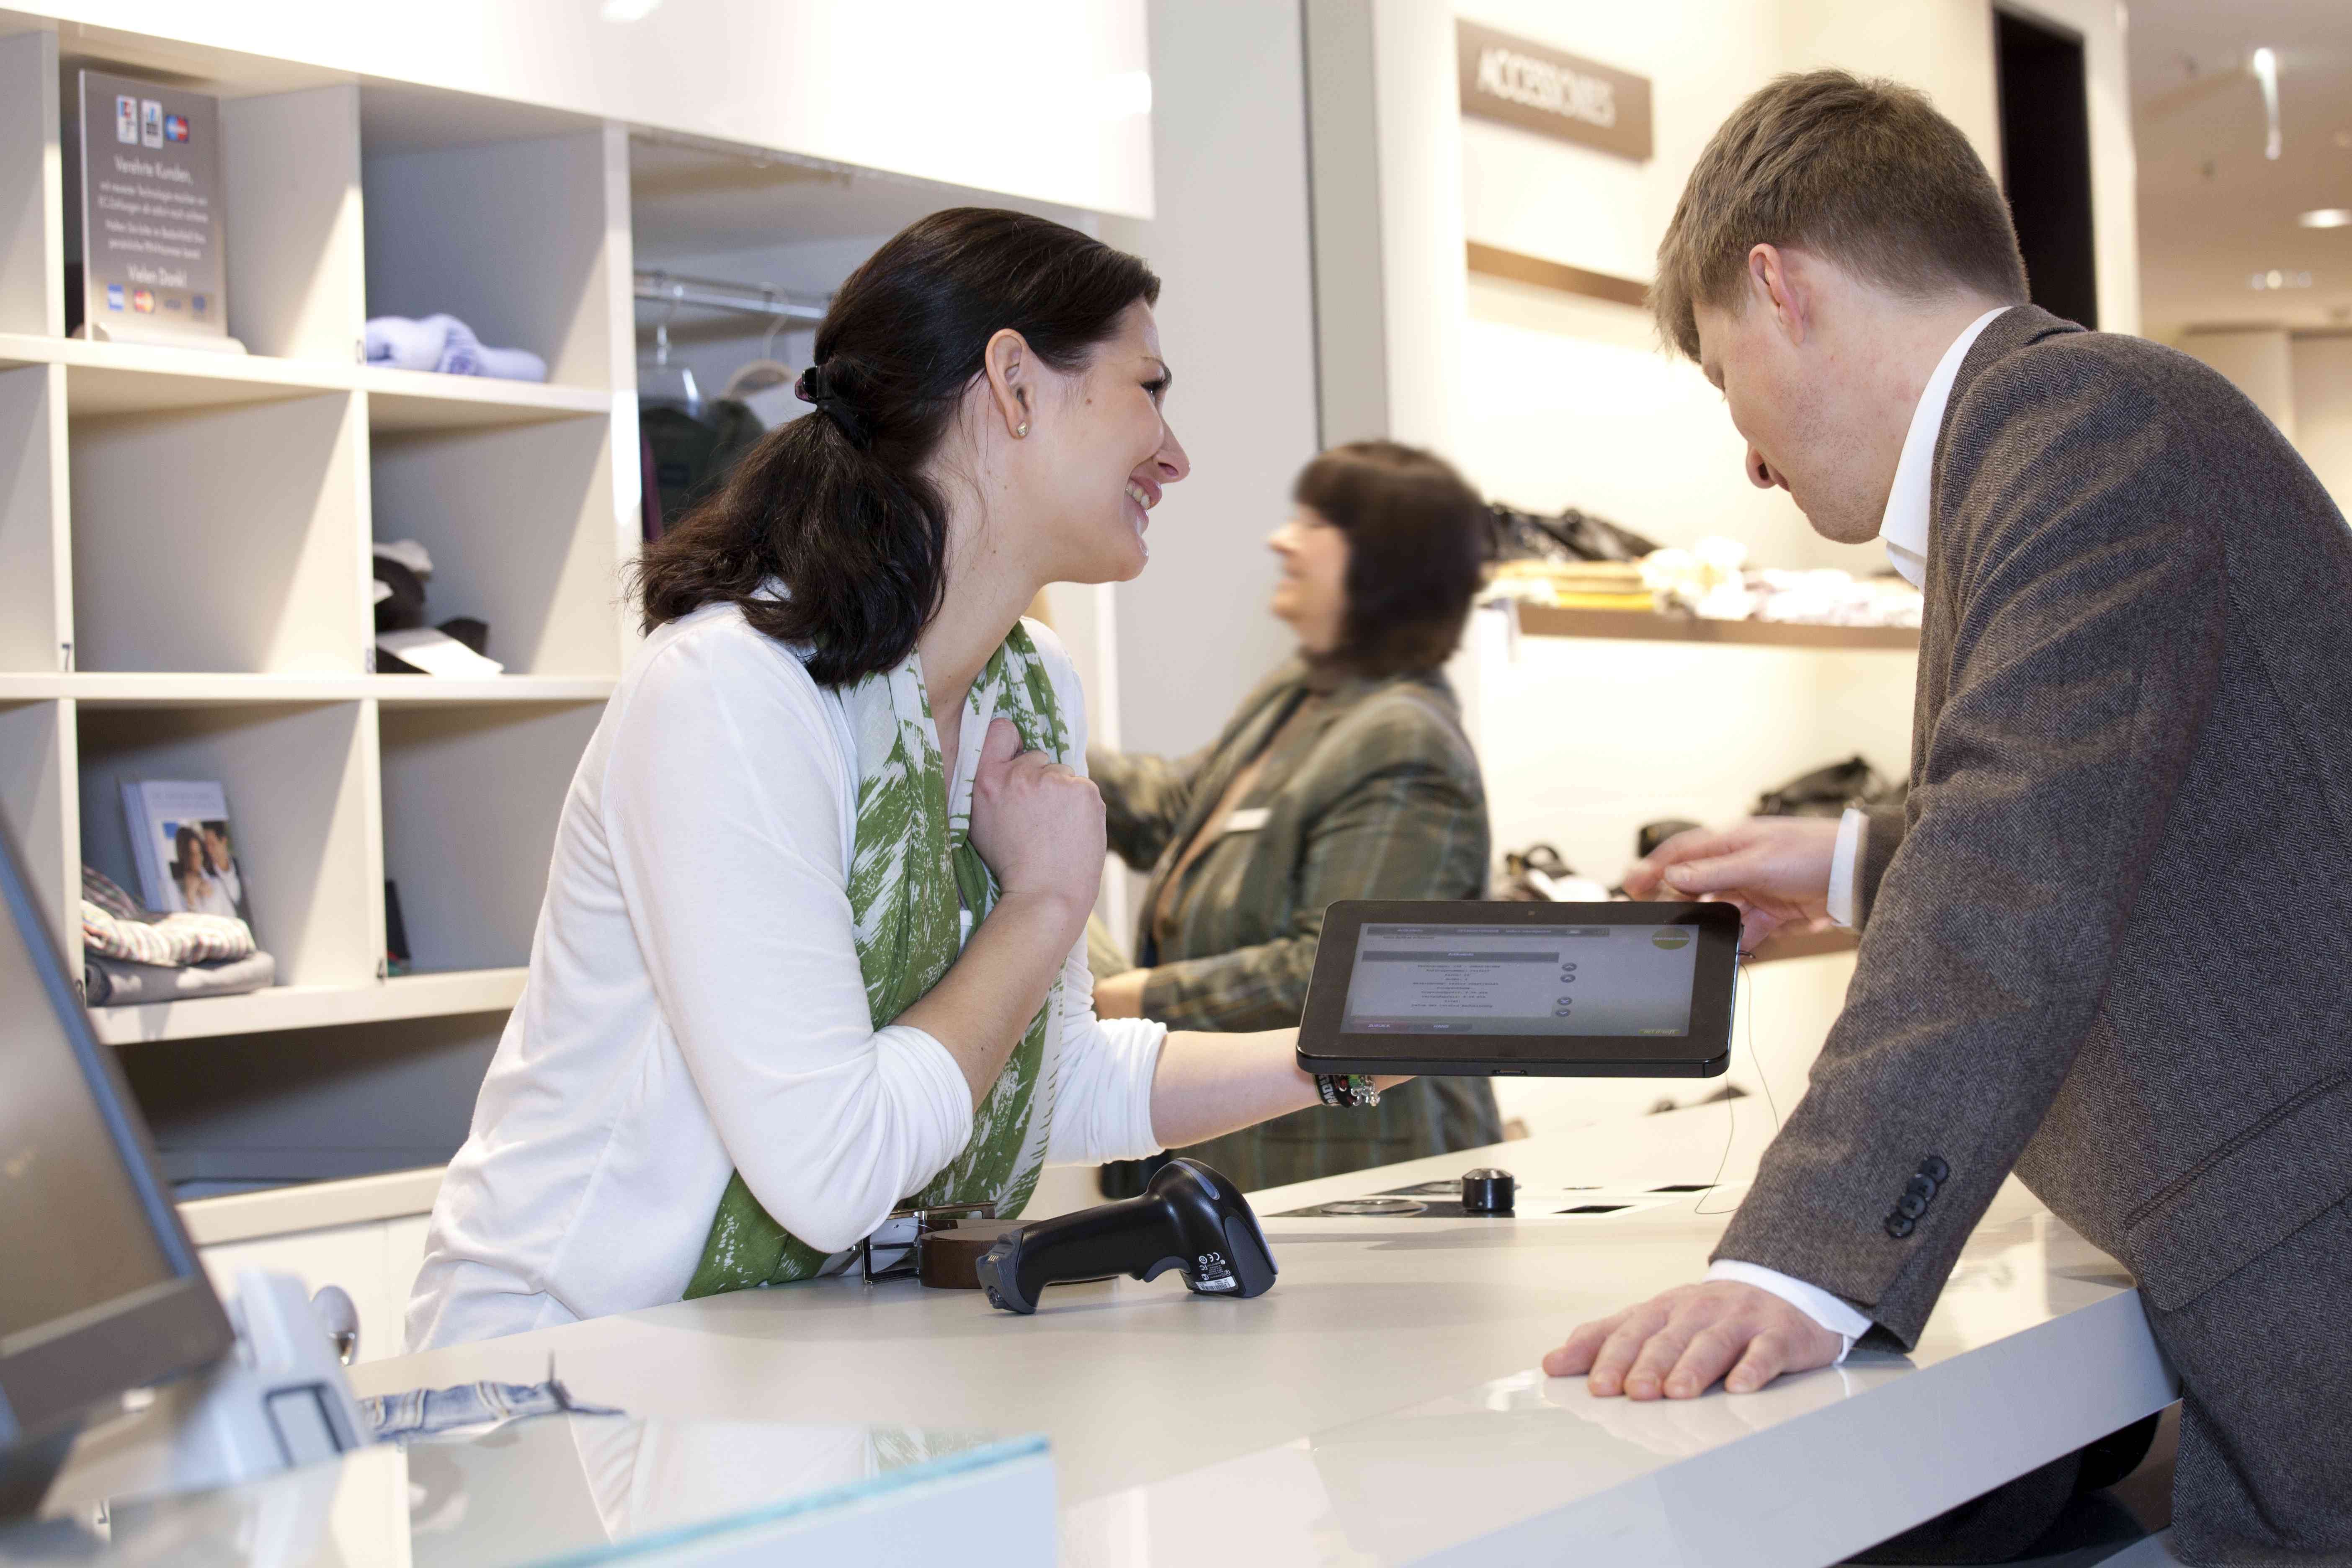 468aed08f0 ... of communication and engagement between consumer and retailer